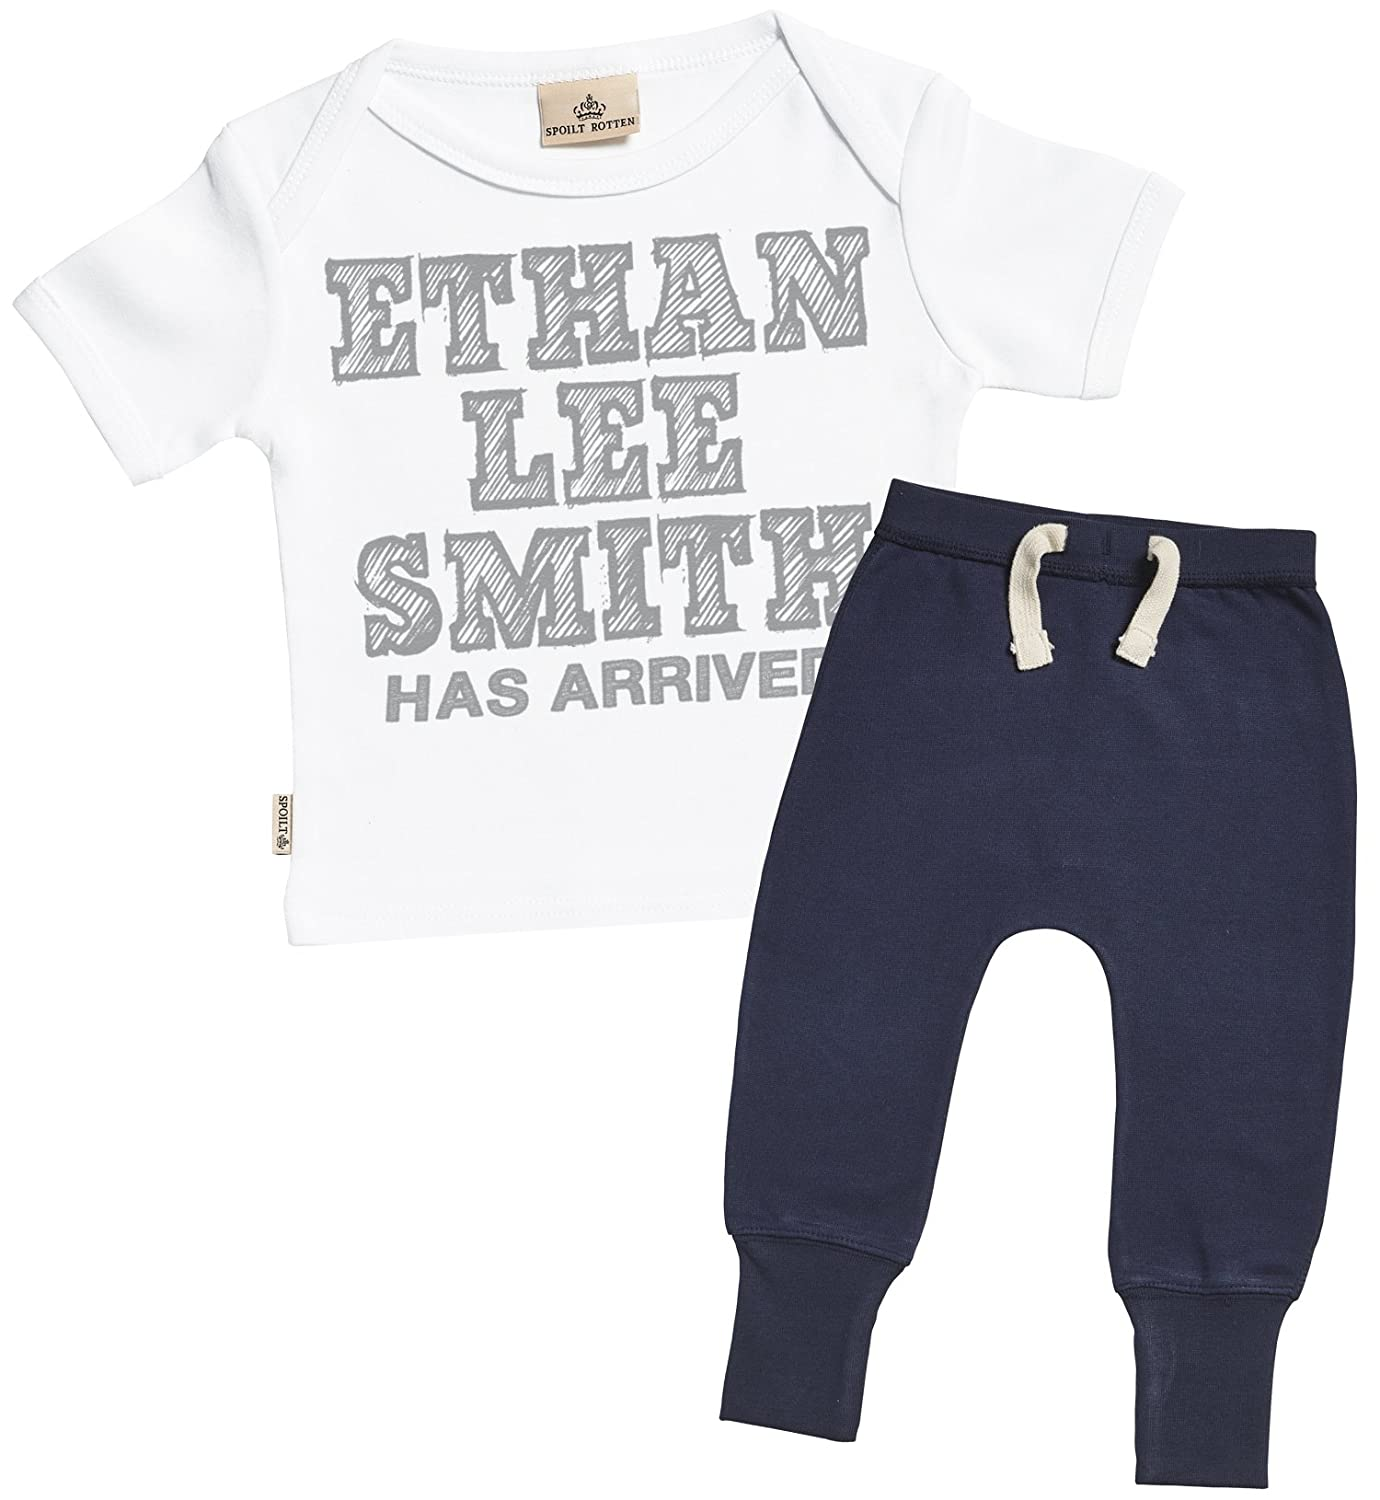 Personalised Full Name Has Arrived Baby T-Shirt SR